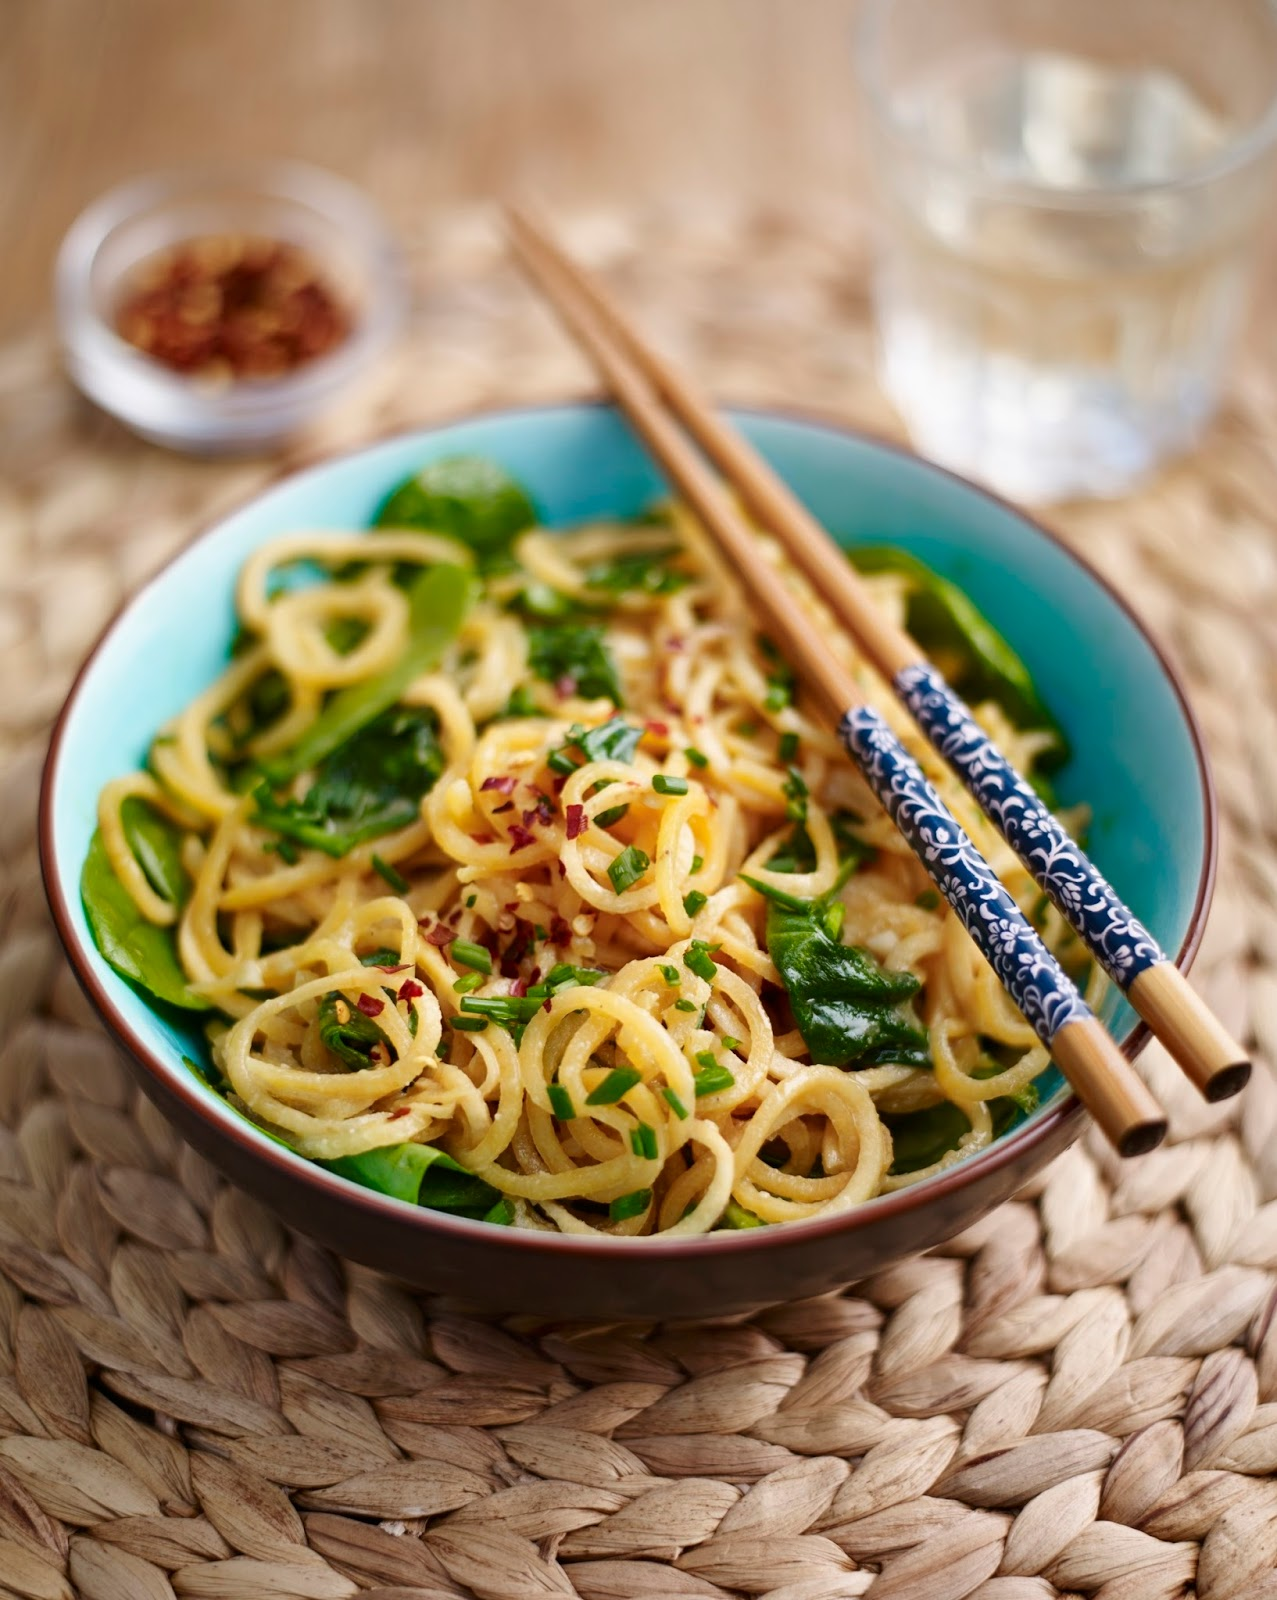 Sweet Potato Noodles with Cashew Butter And Spinach